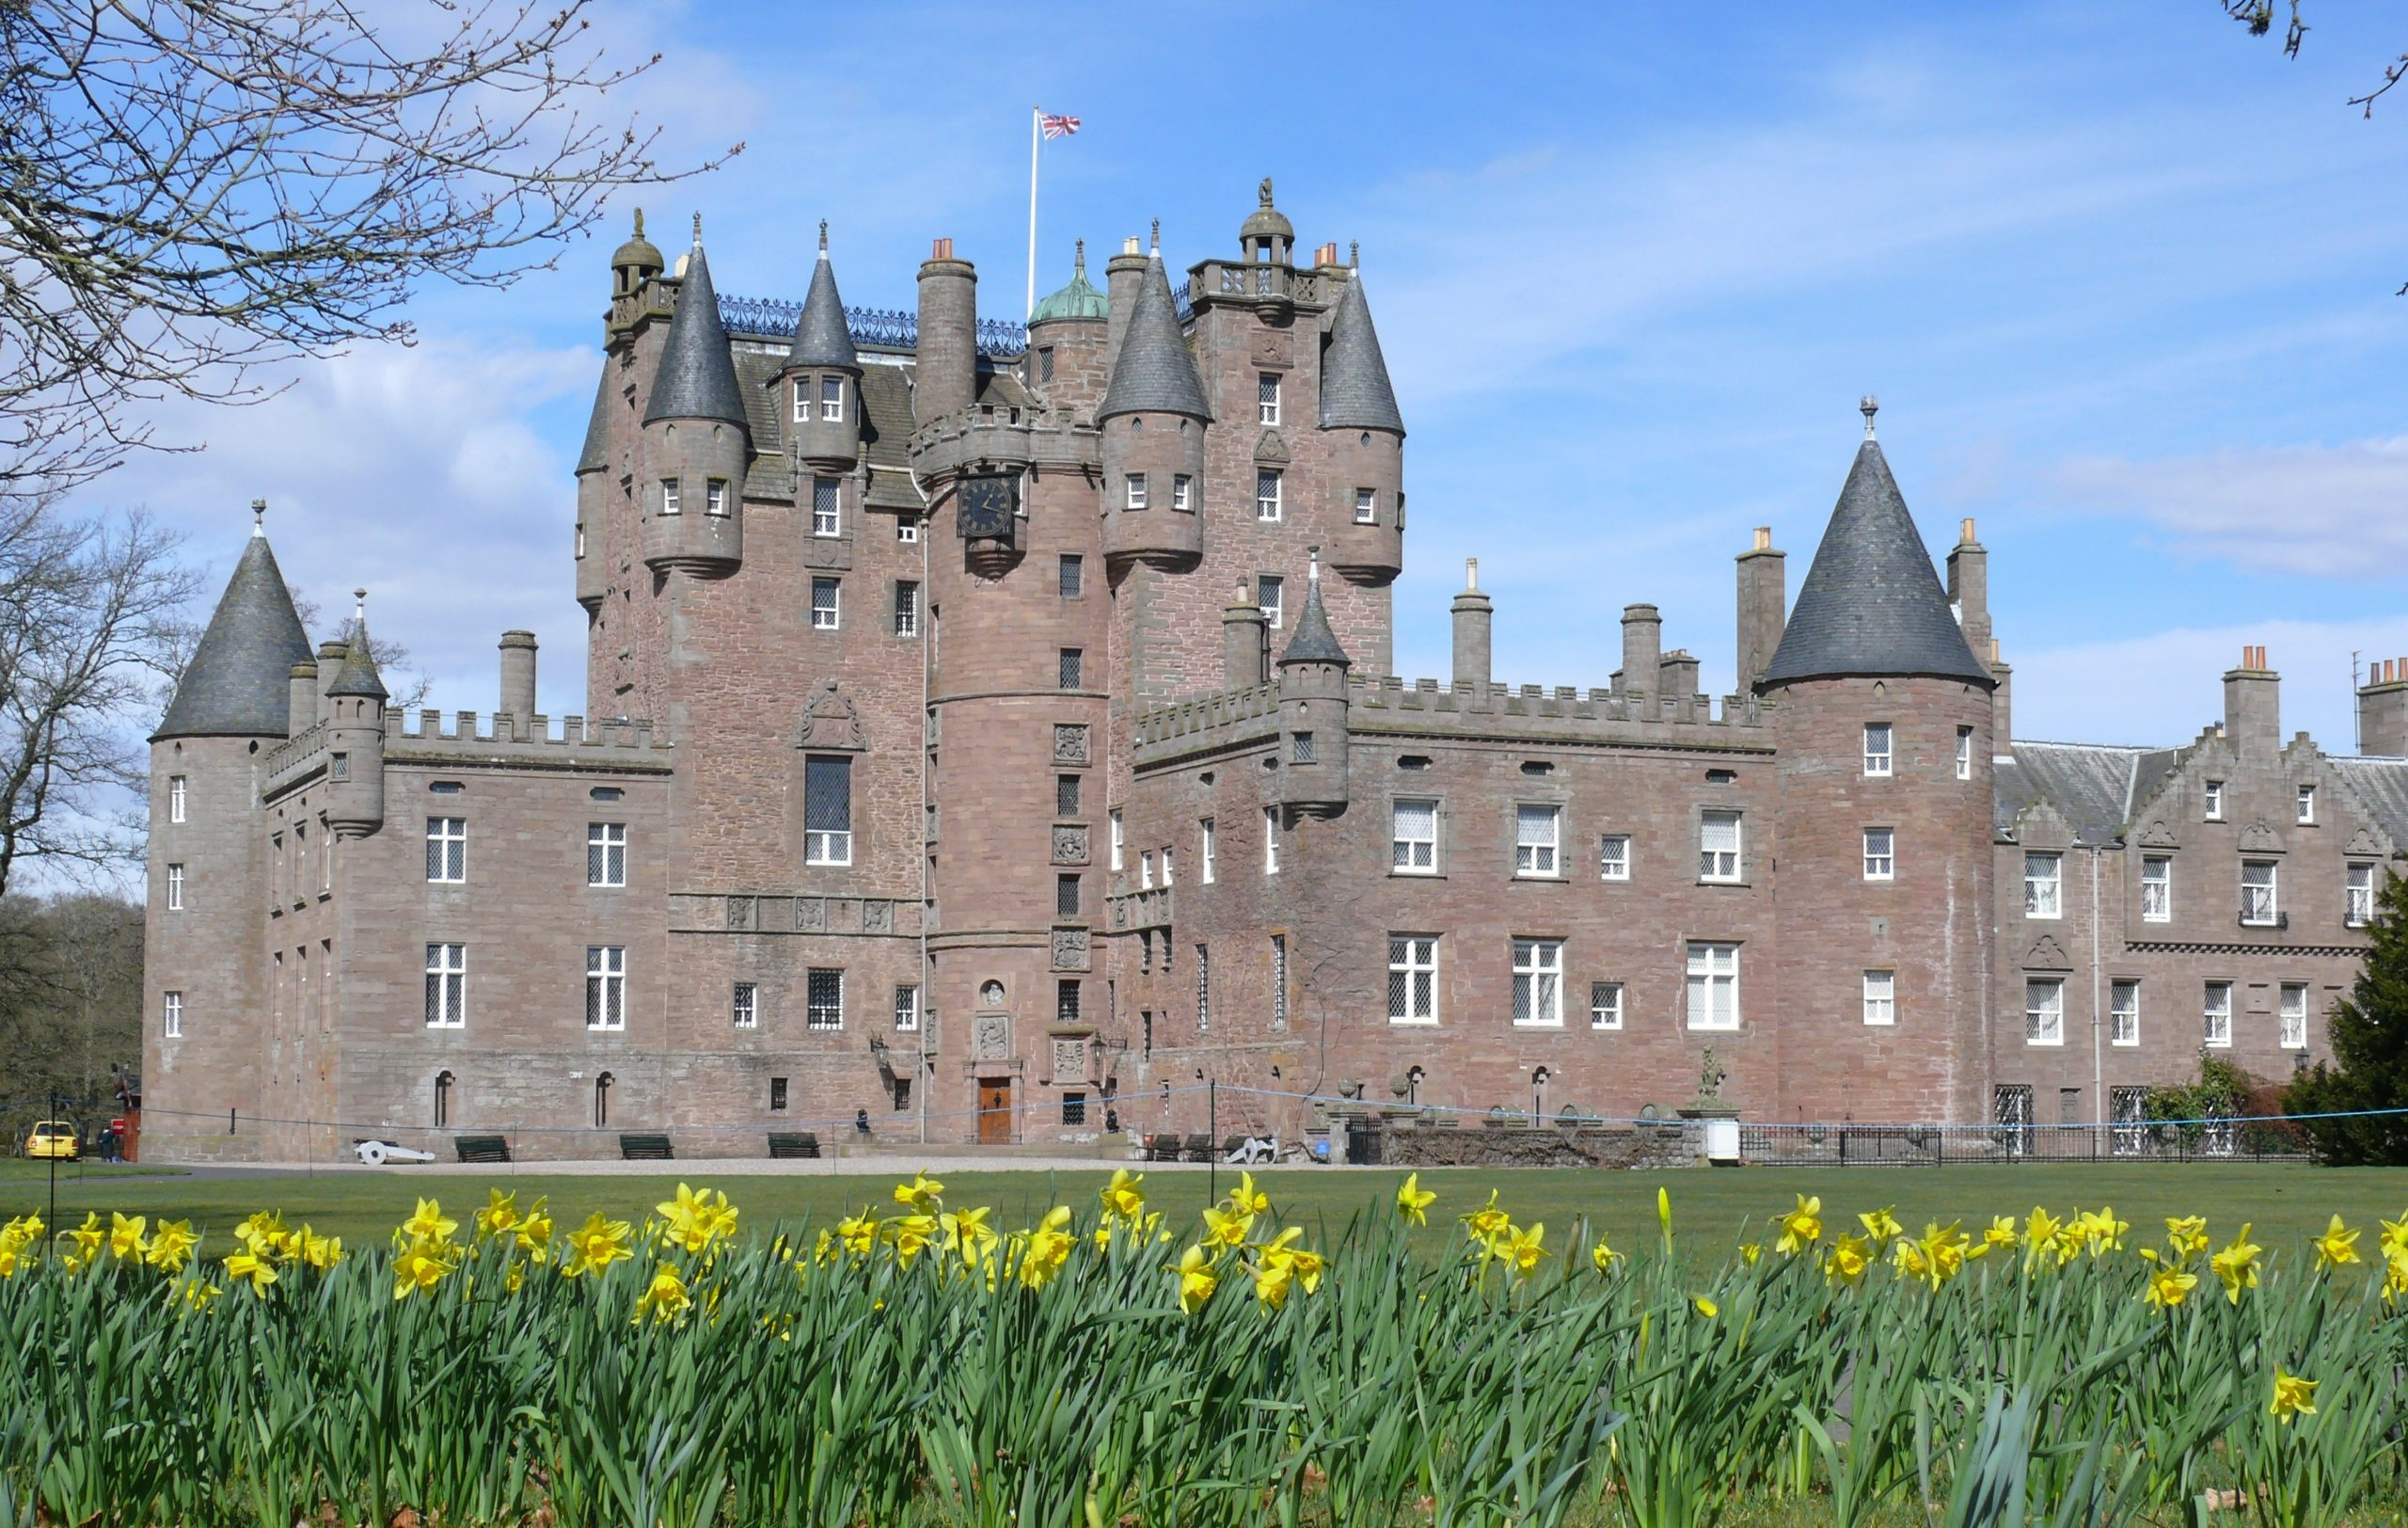 Glamis Castle, family home of Lord Glamis, Simon Bowes-Lyon, Earl of Strathmore and Kinghorne.